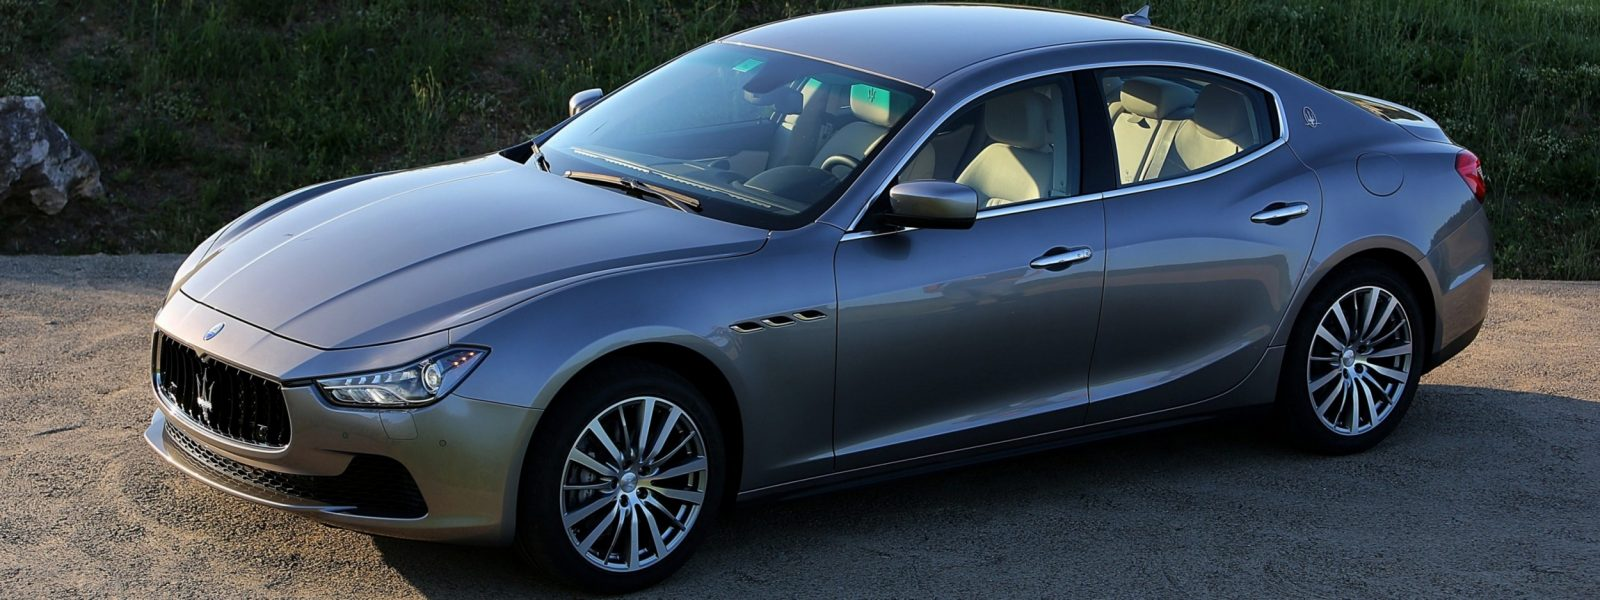 2014 Maserati Ghibli - Latest Official Photos 10